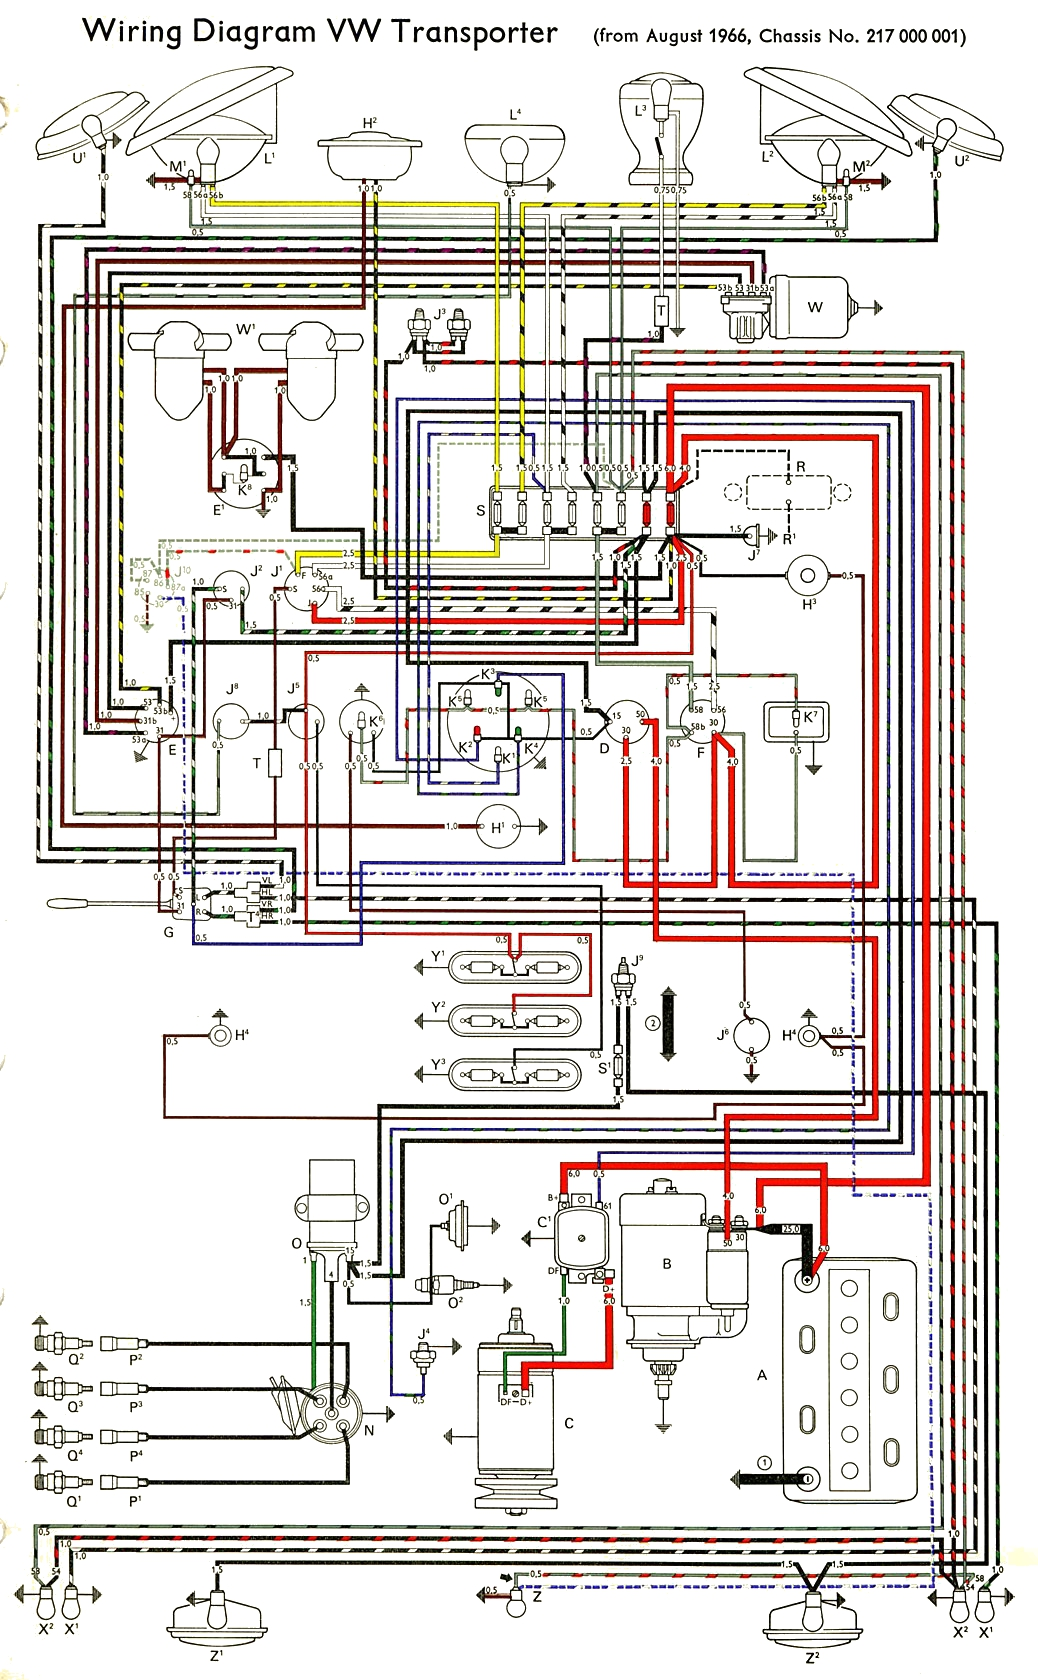 thesamba com type 2 wiring diagrams rh thesamba com VW Beetle Generator Wiring Diagram Electrical Wiring Diagrams